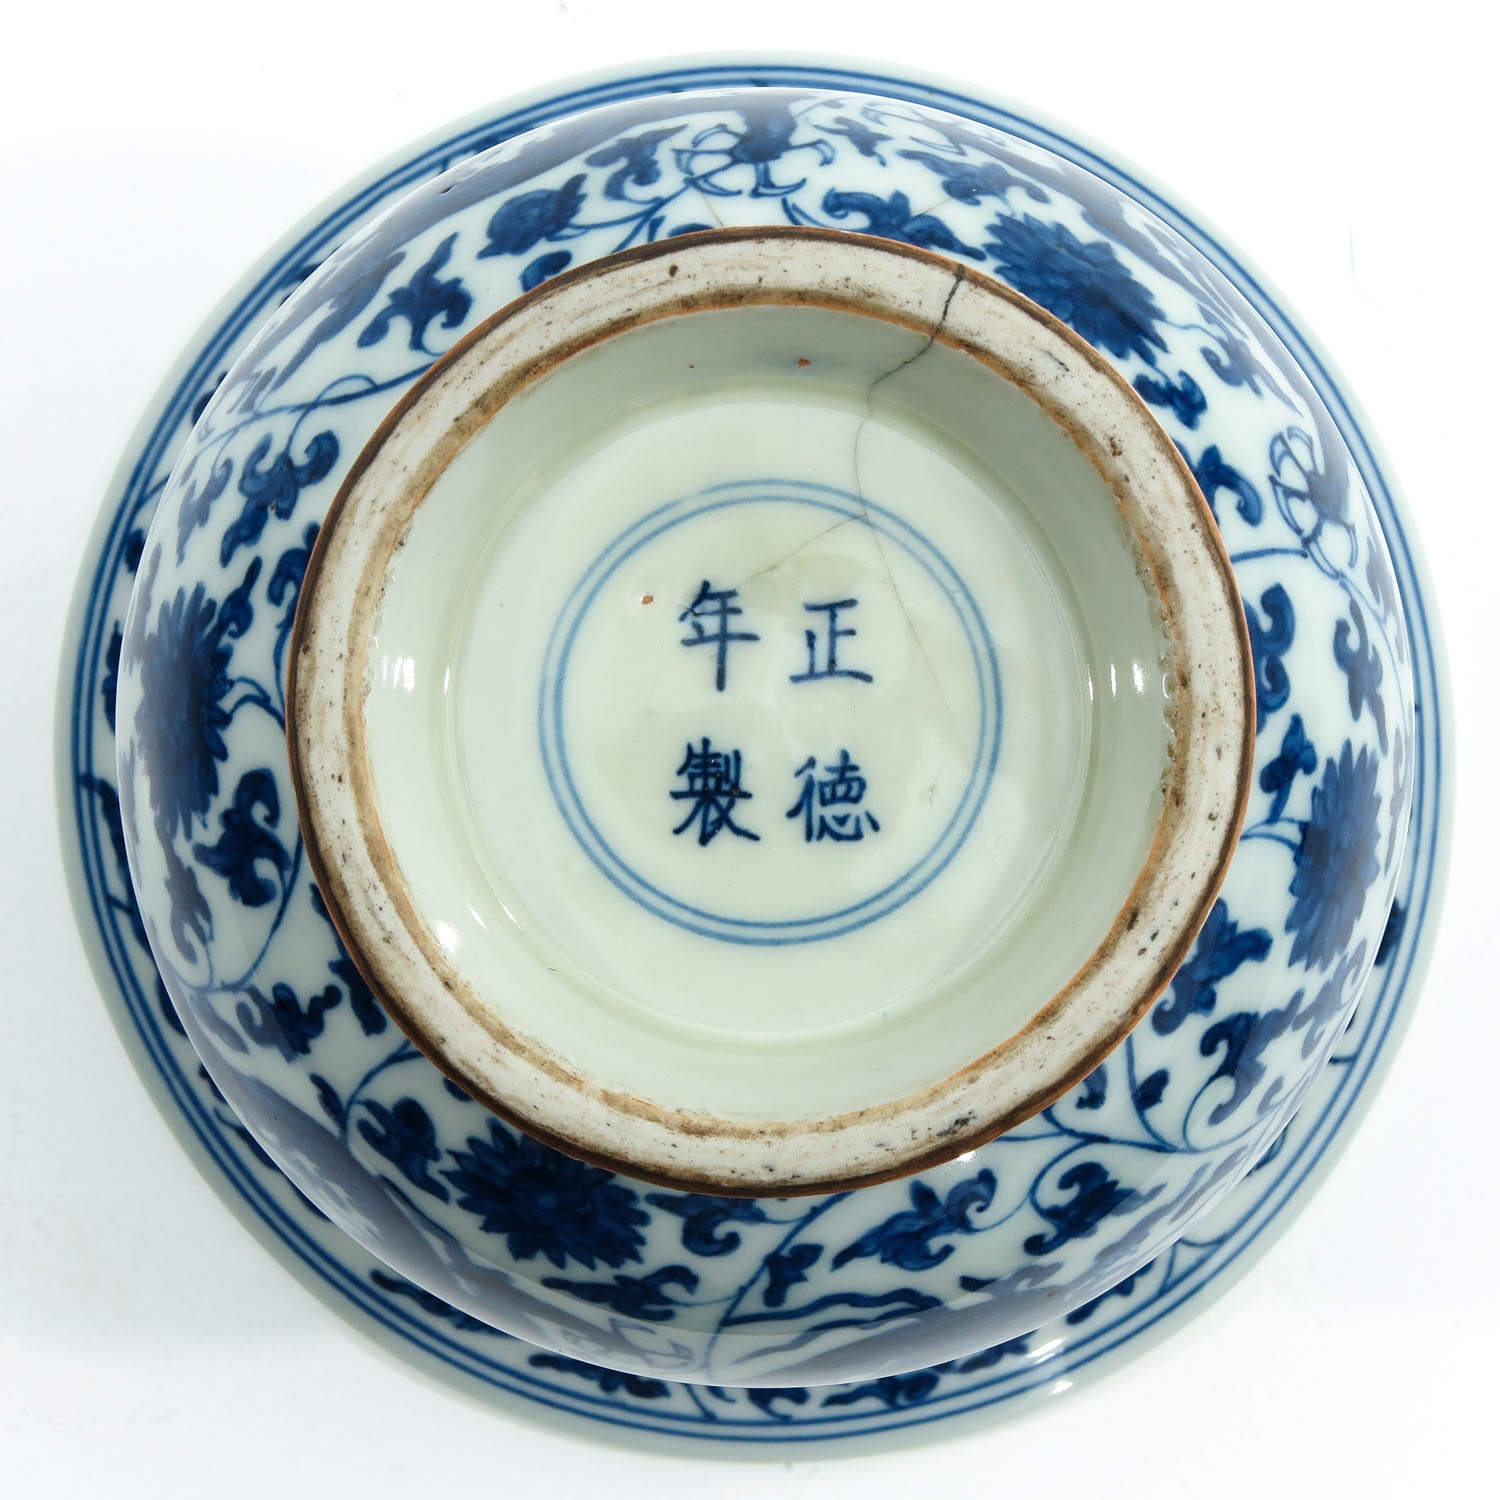 A Blue and White Vase - Image 6 of 9